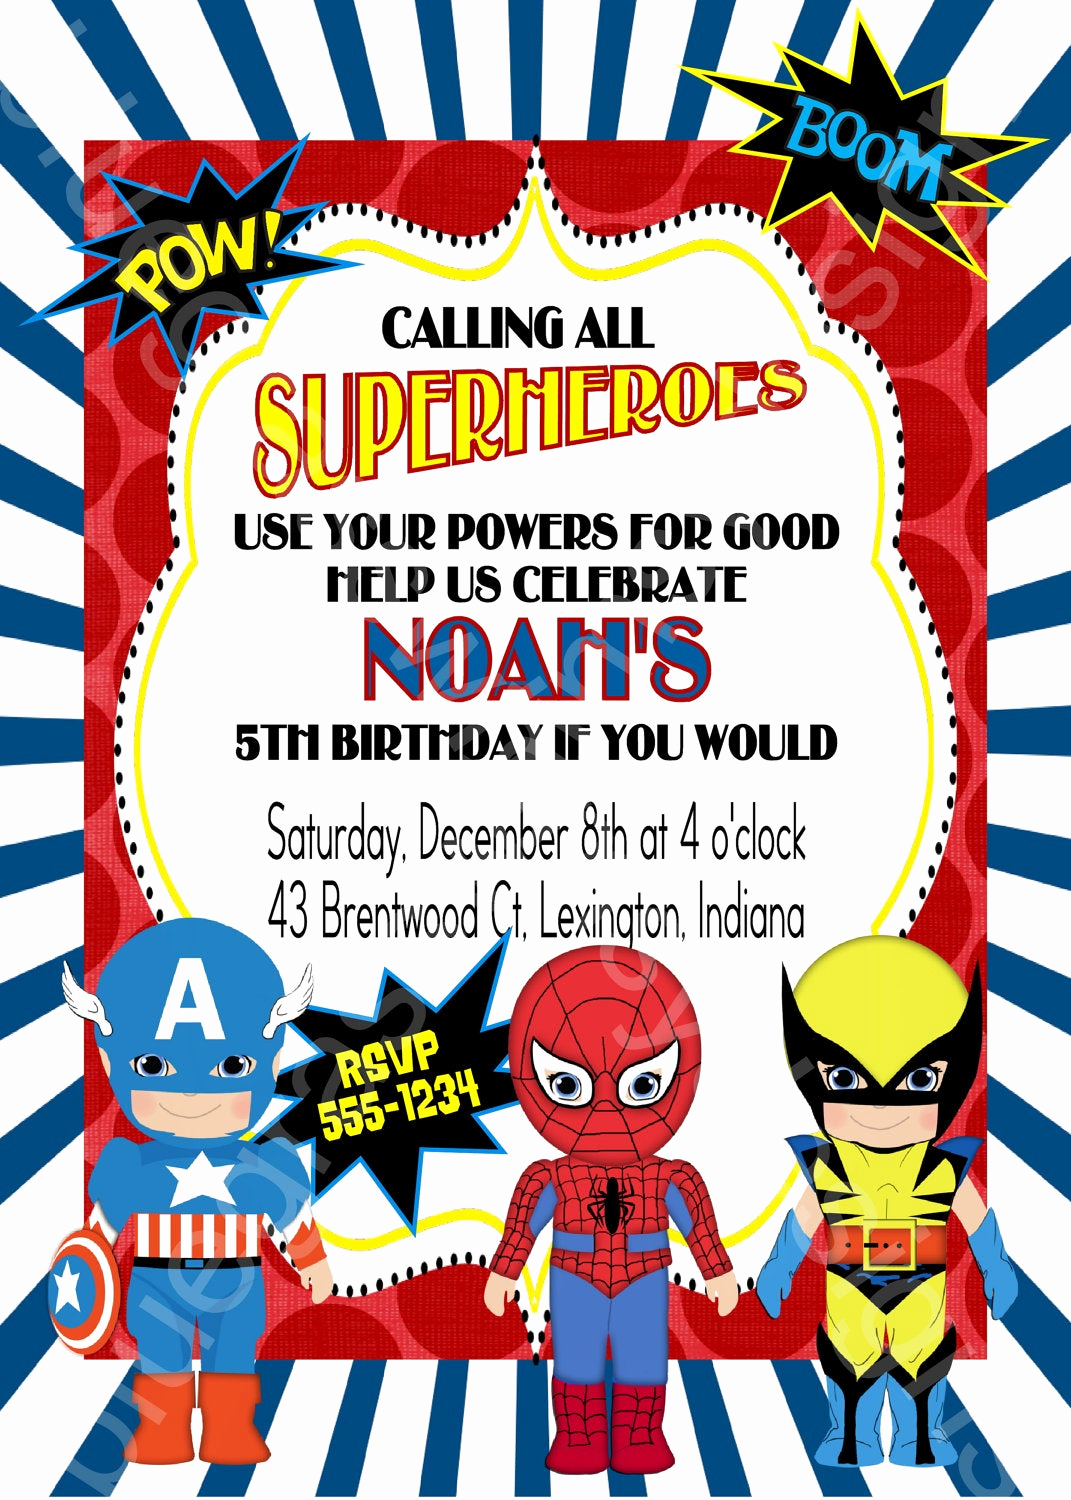 Superhero Birthday Invitation Wording Best Of Calling All Superheroes Birthday Party Invitation Boy or